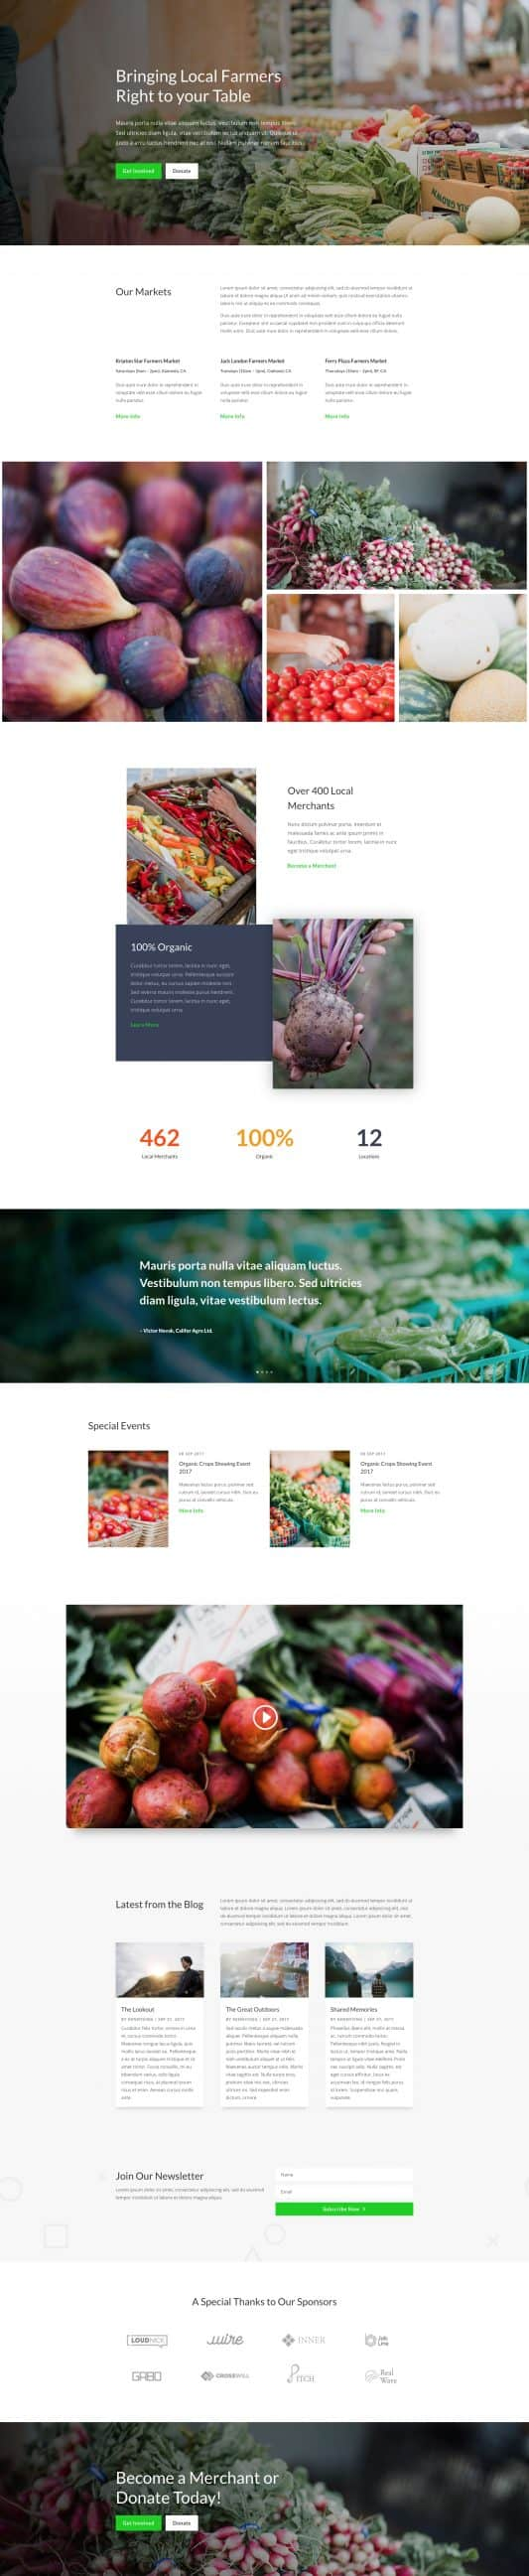 The Farmers Market Page Style: Homepage Design 1